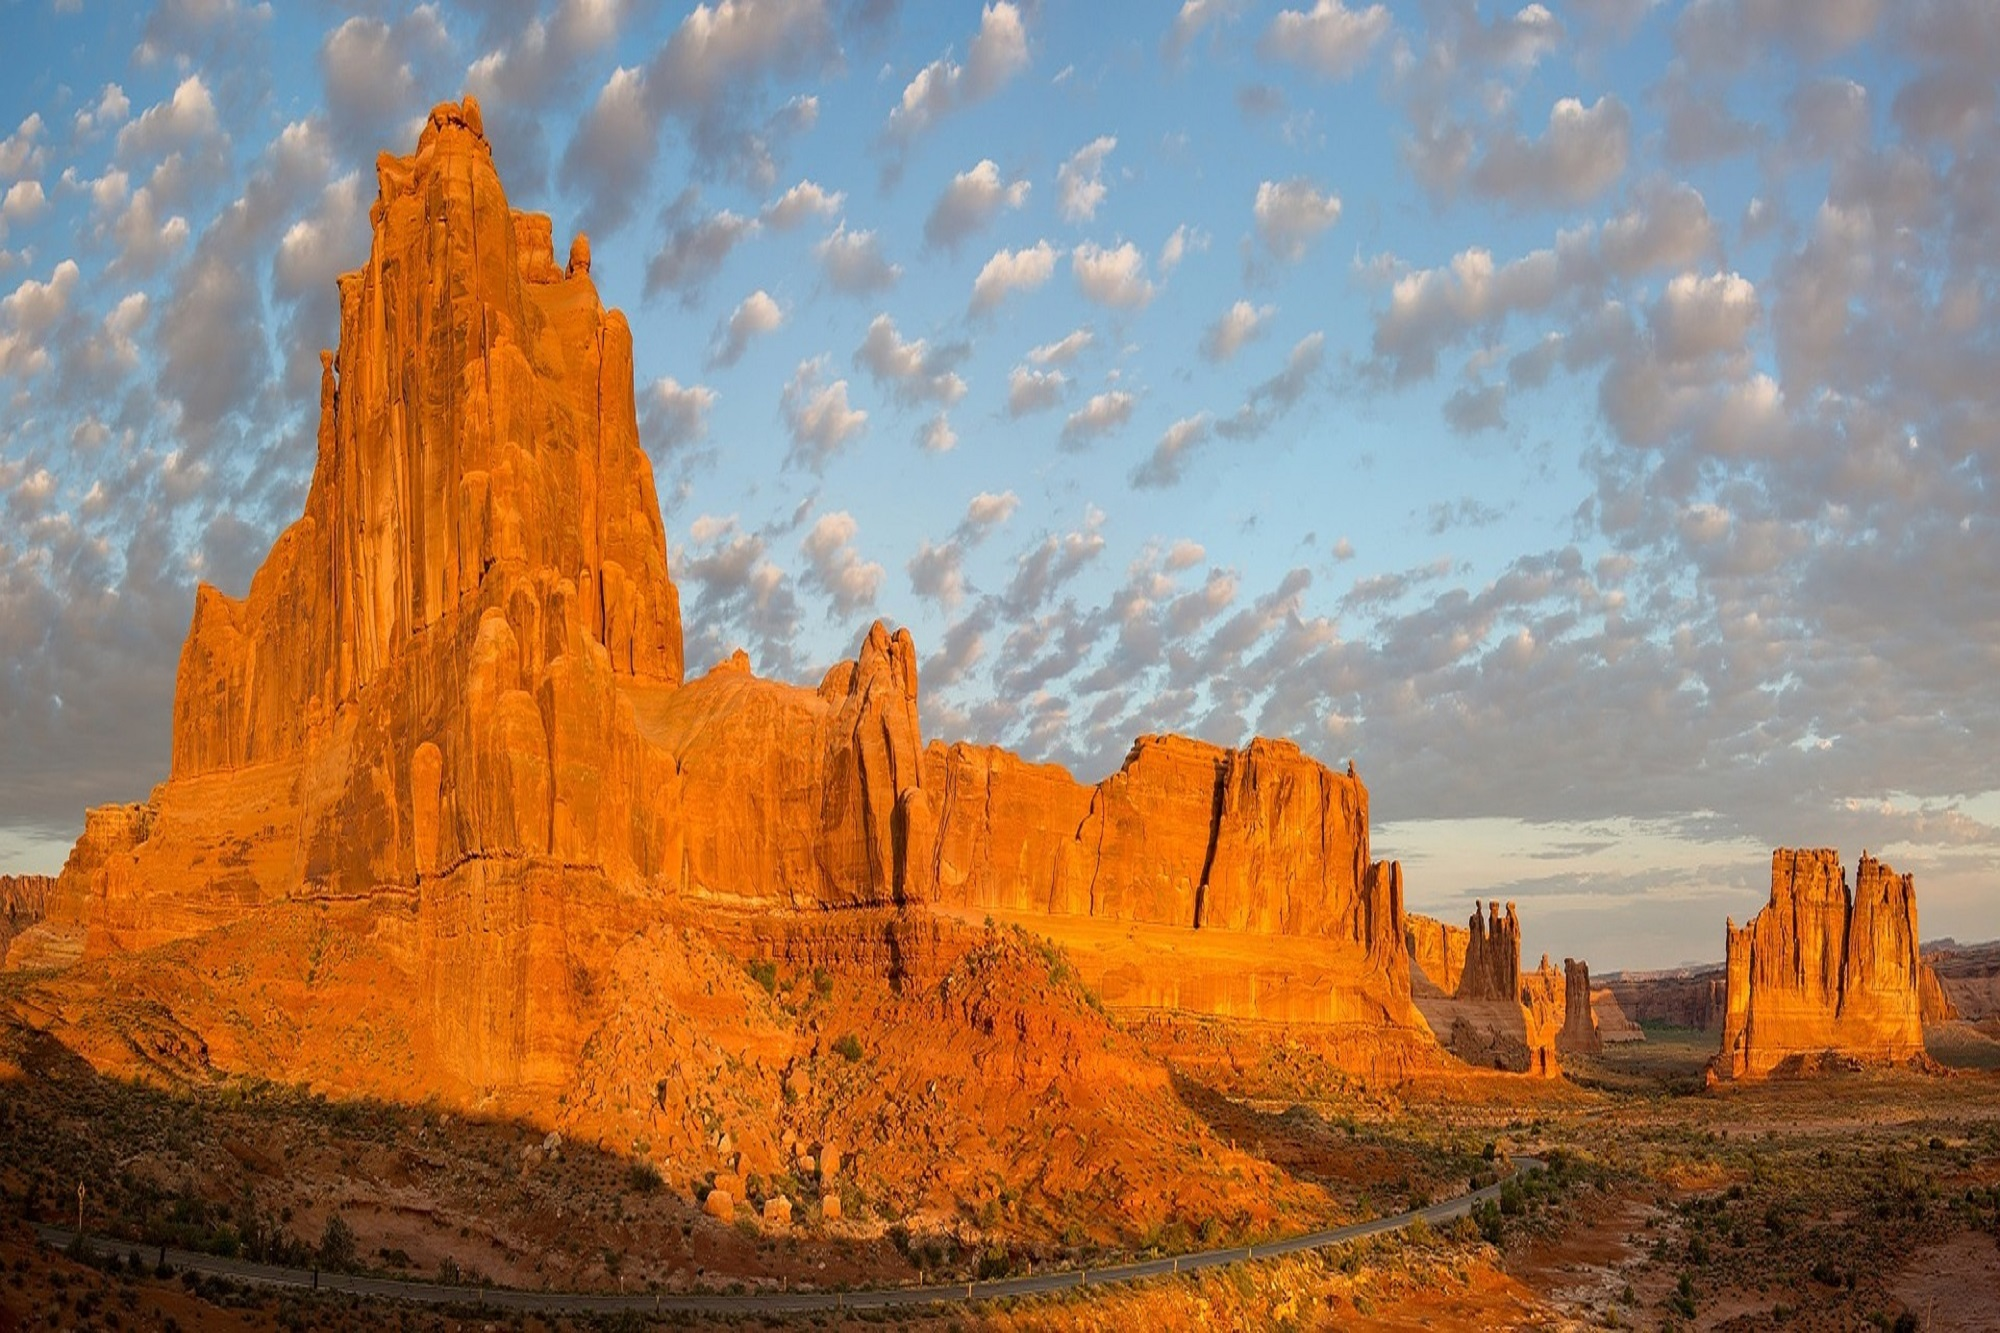 arches-national-park-959713_1920